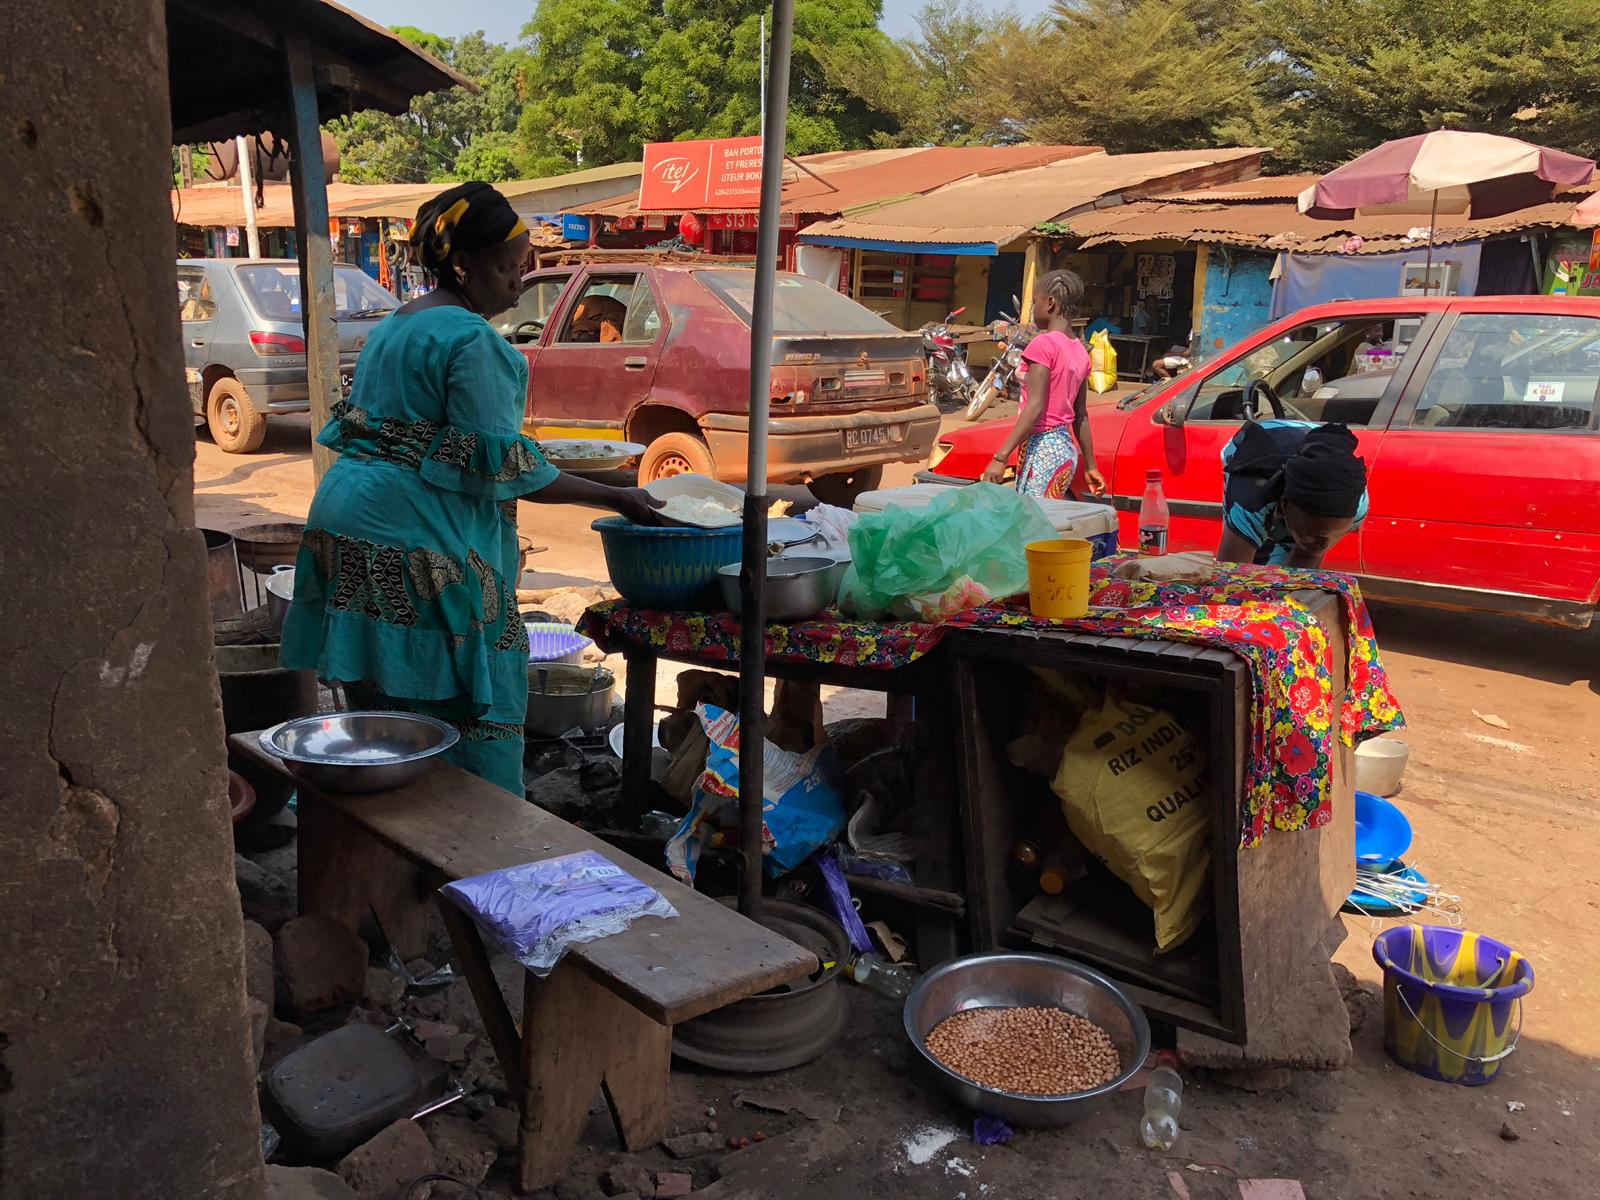 Food being prepared in Boke, Guinea.